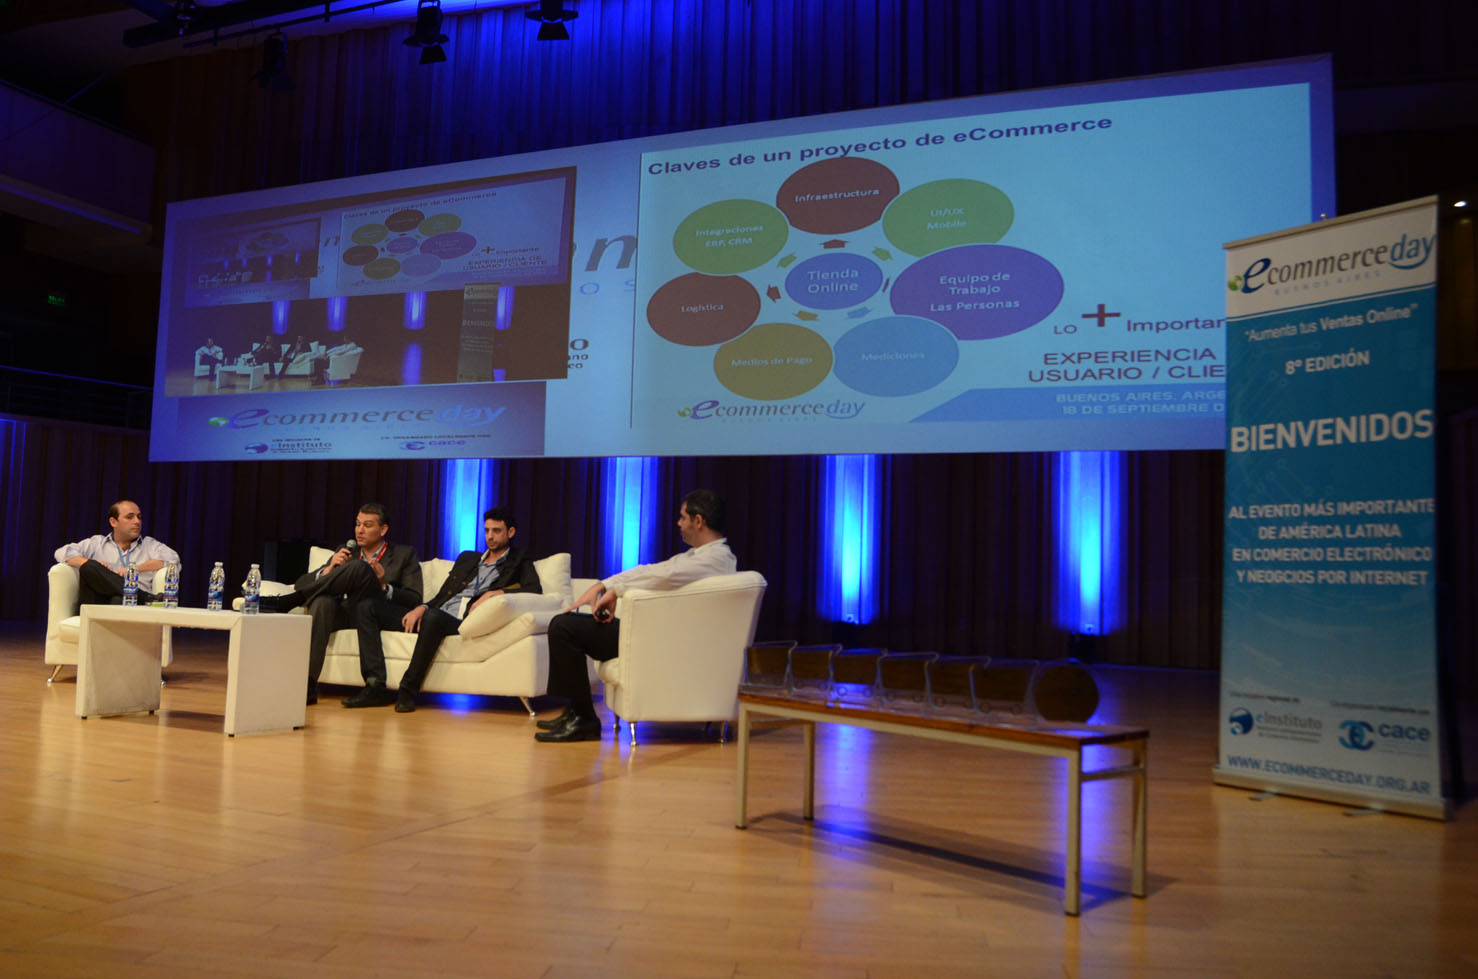 Revive el eCommerce Day Buenos Aires 2014